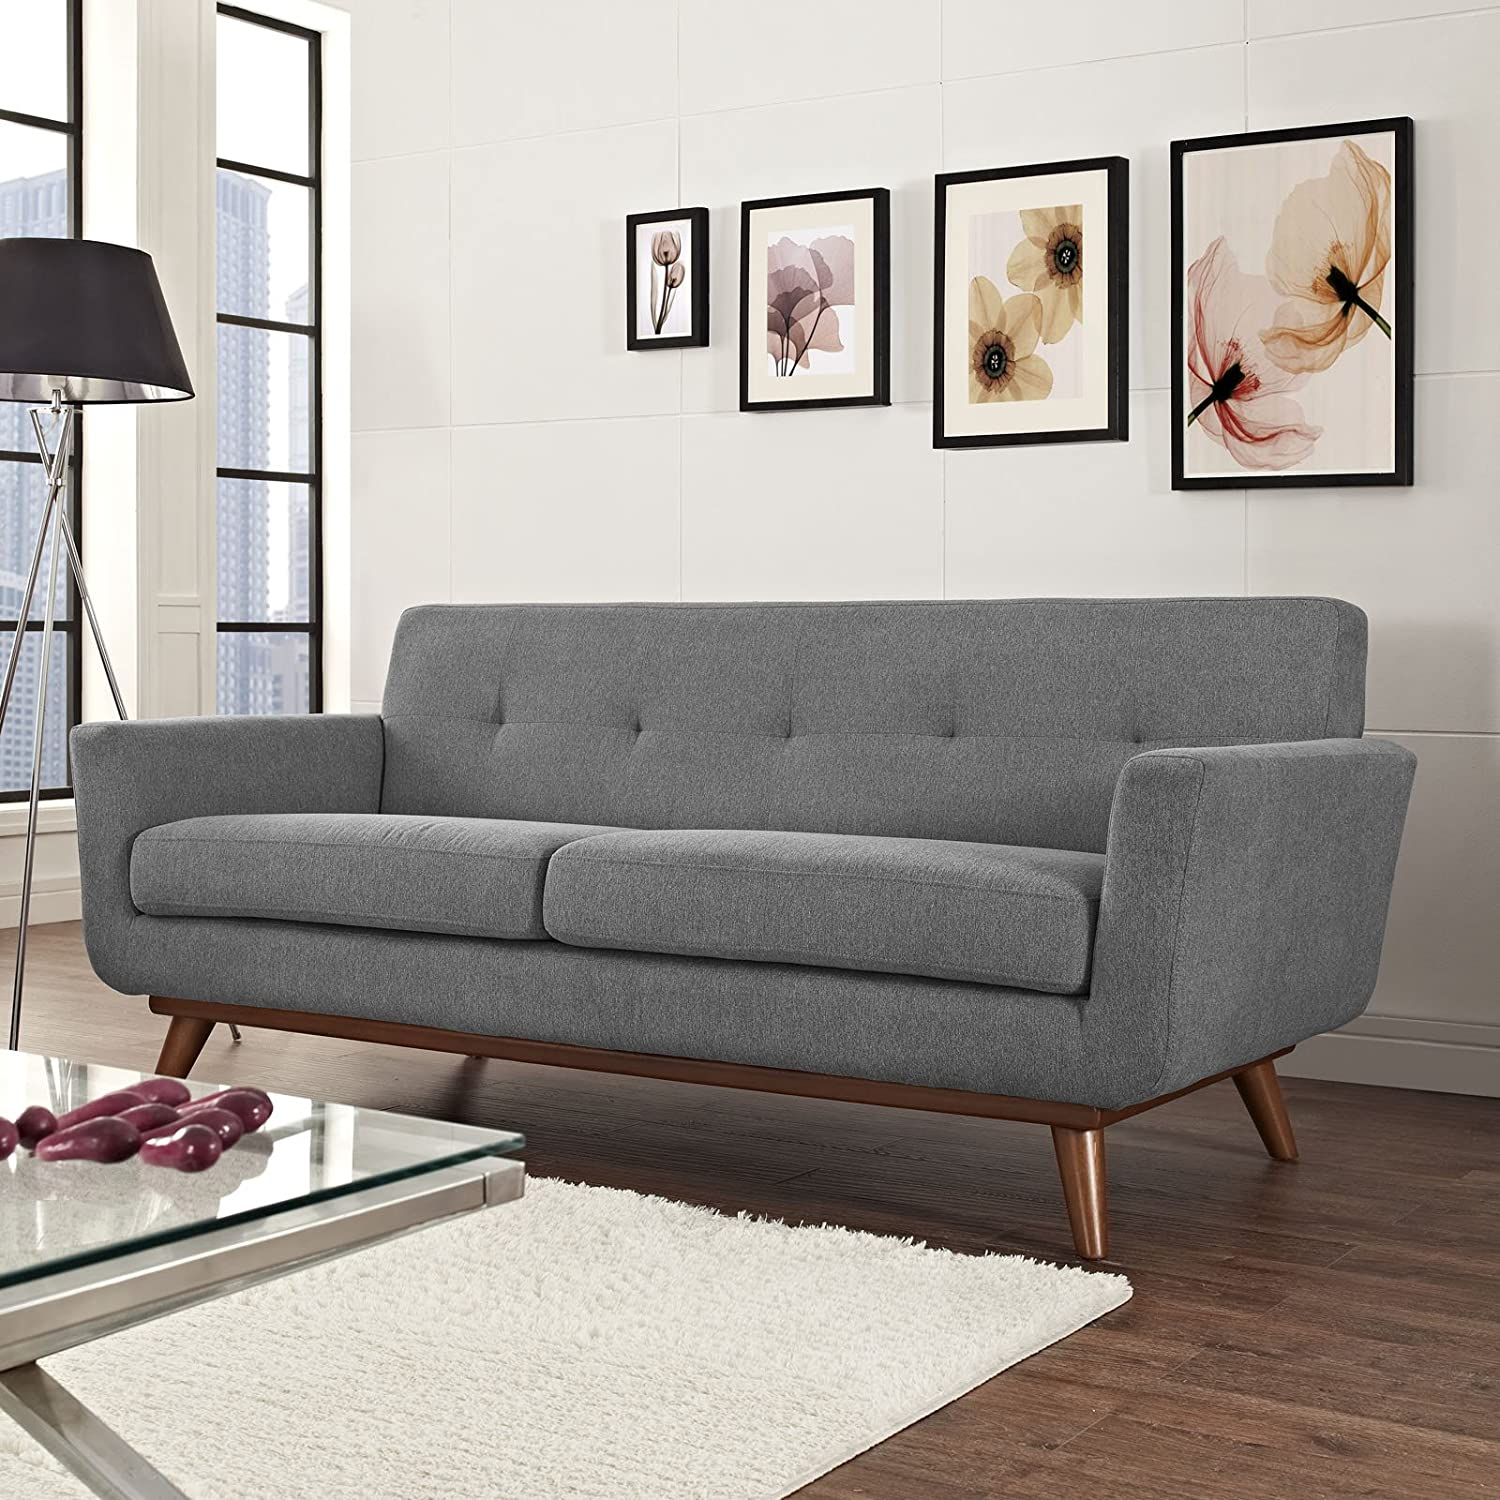 Modway Engage Mid-Century Modern Upholstered Fabric Loveseat In Expectation Gray